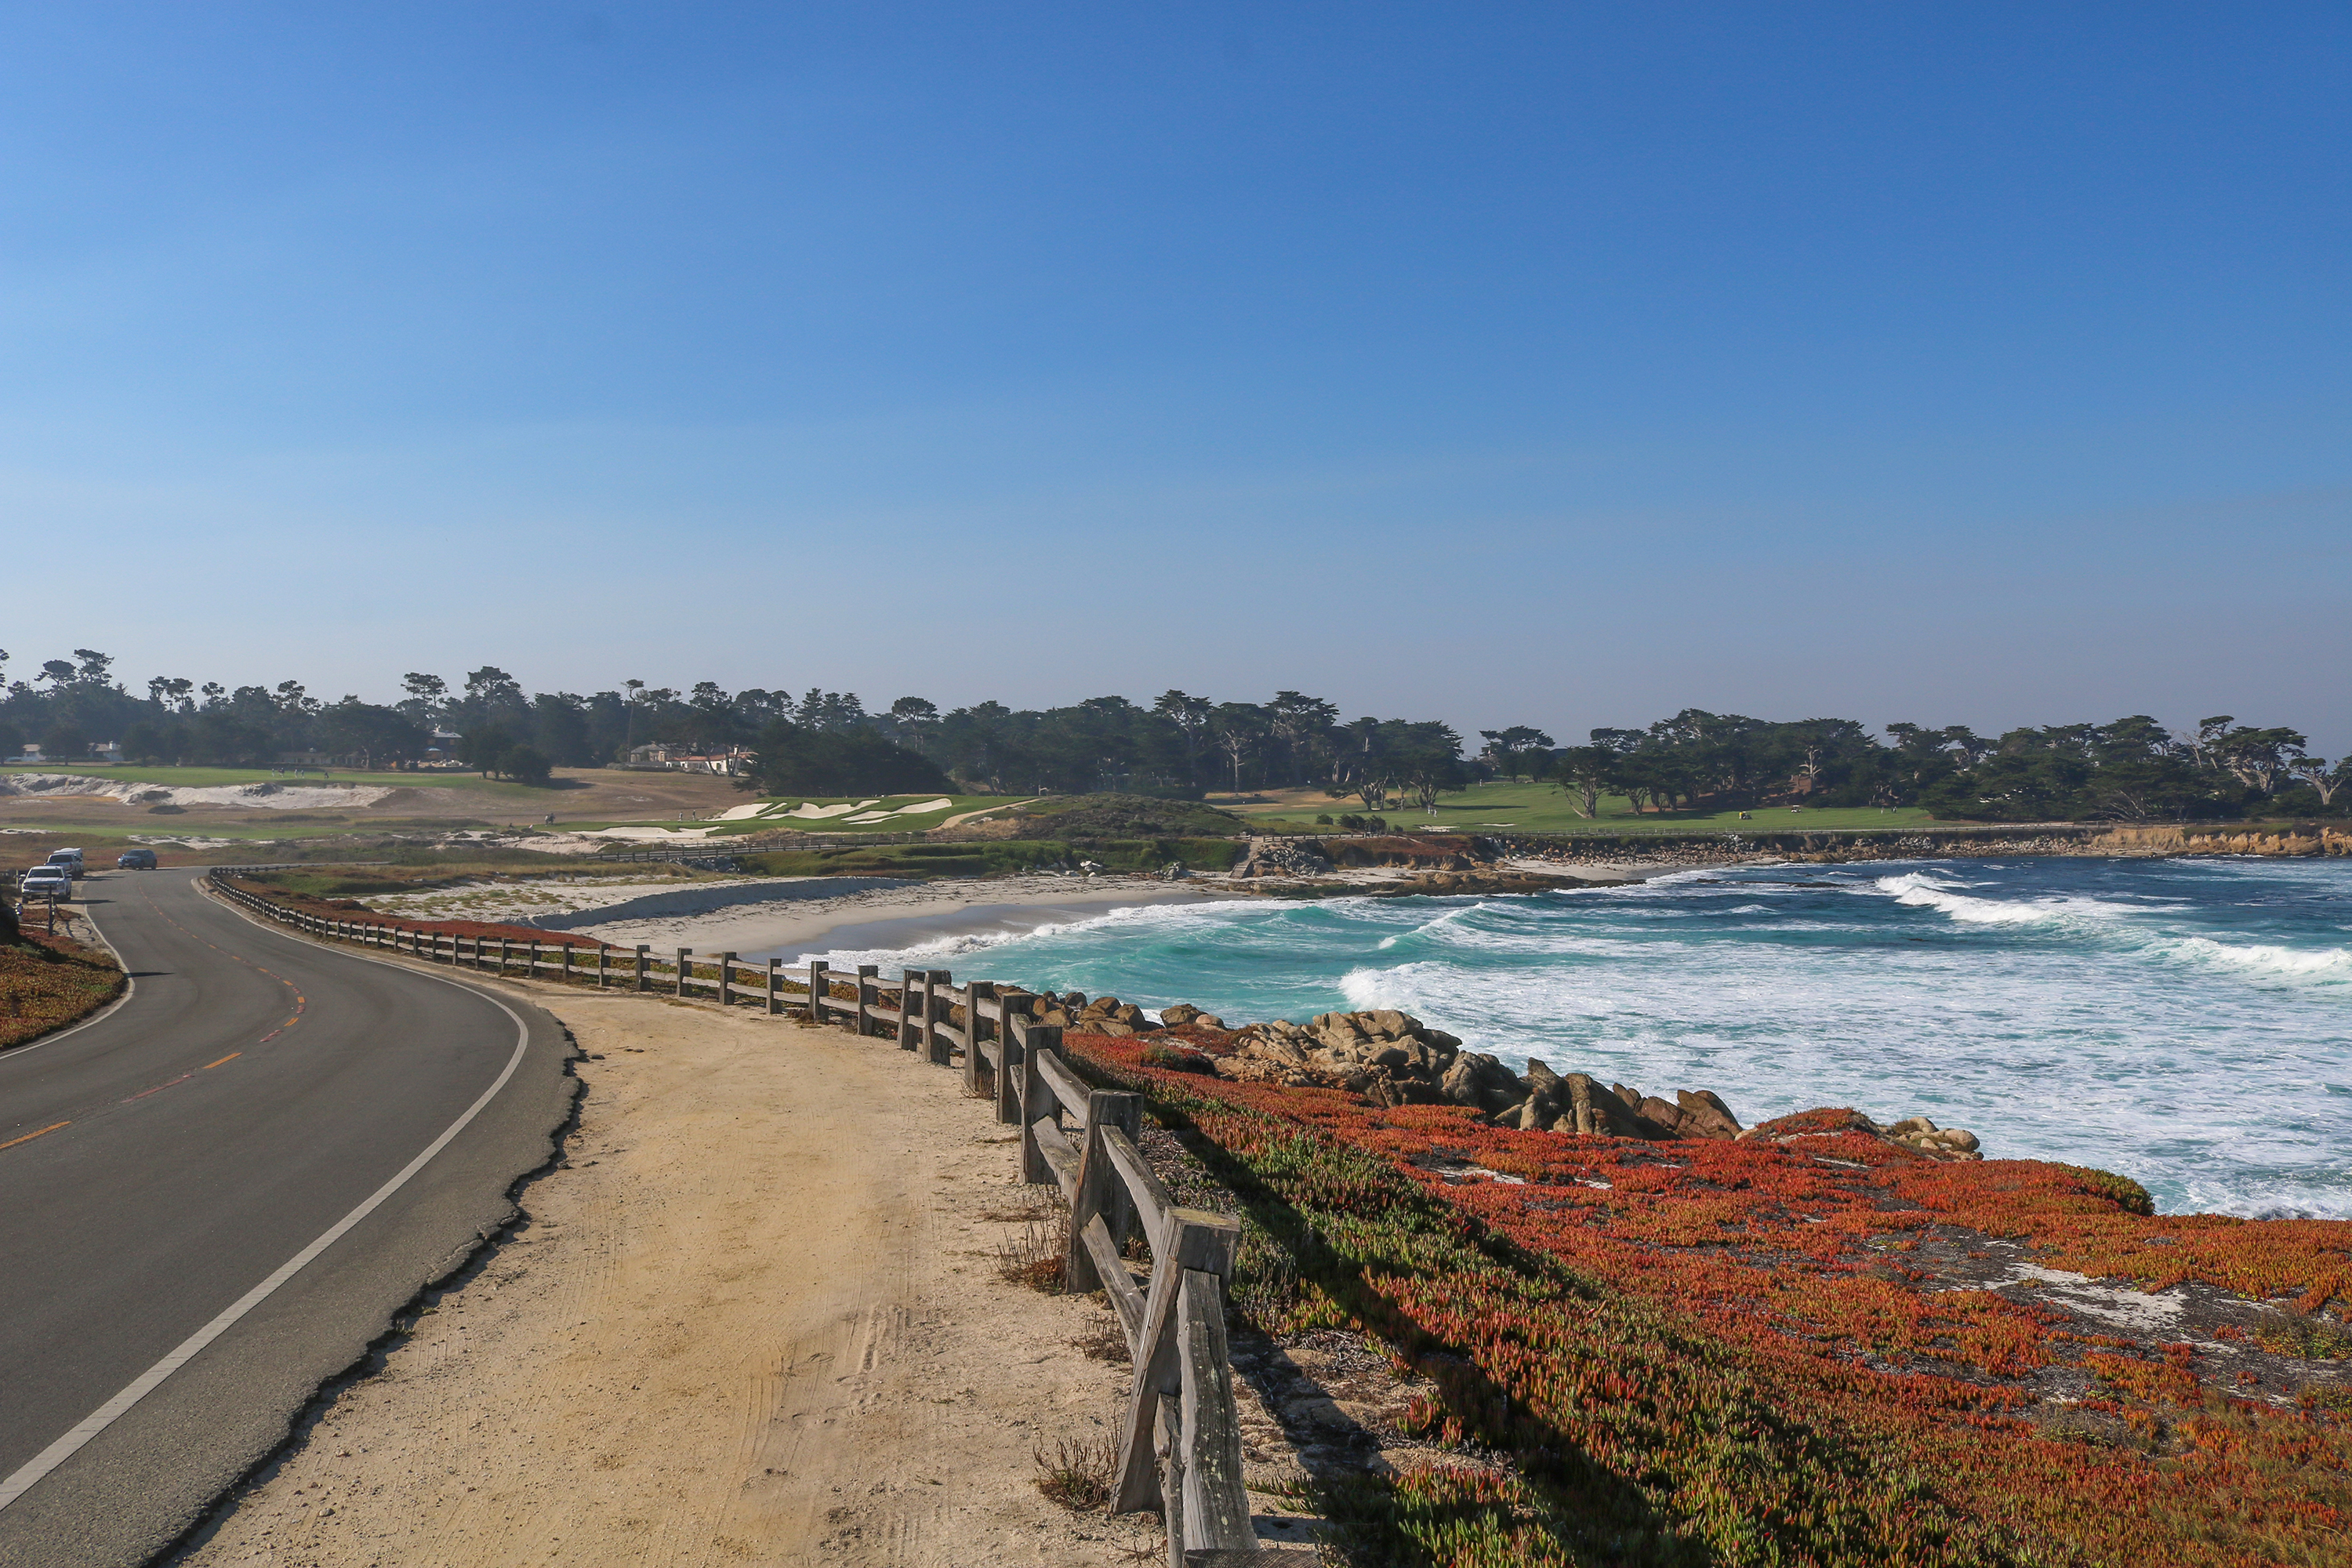 Here S A Look At The Course Which Starts Along Moss Beach Spanish Bay Before Jogging Past Point Joe Bird Rock Fanshell Cypress